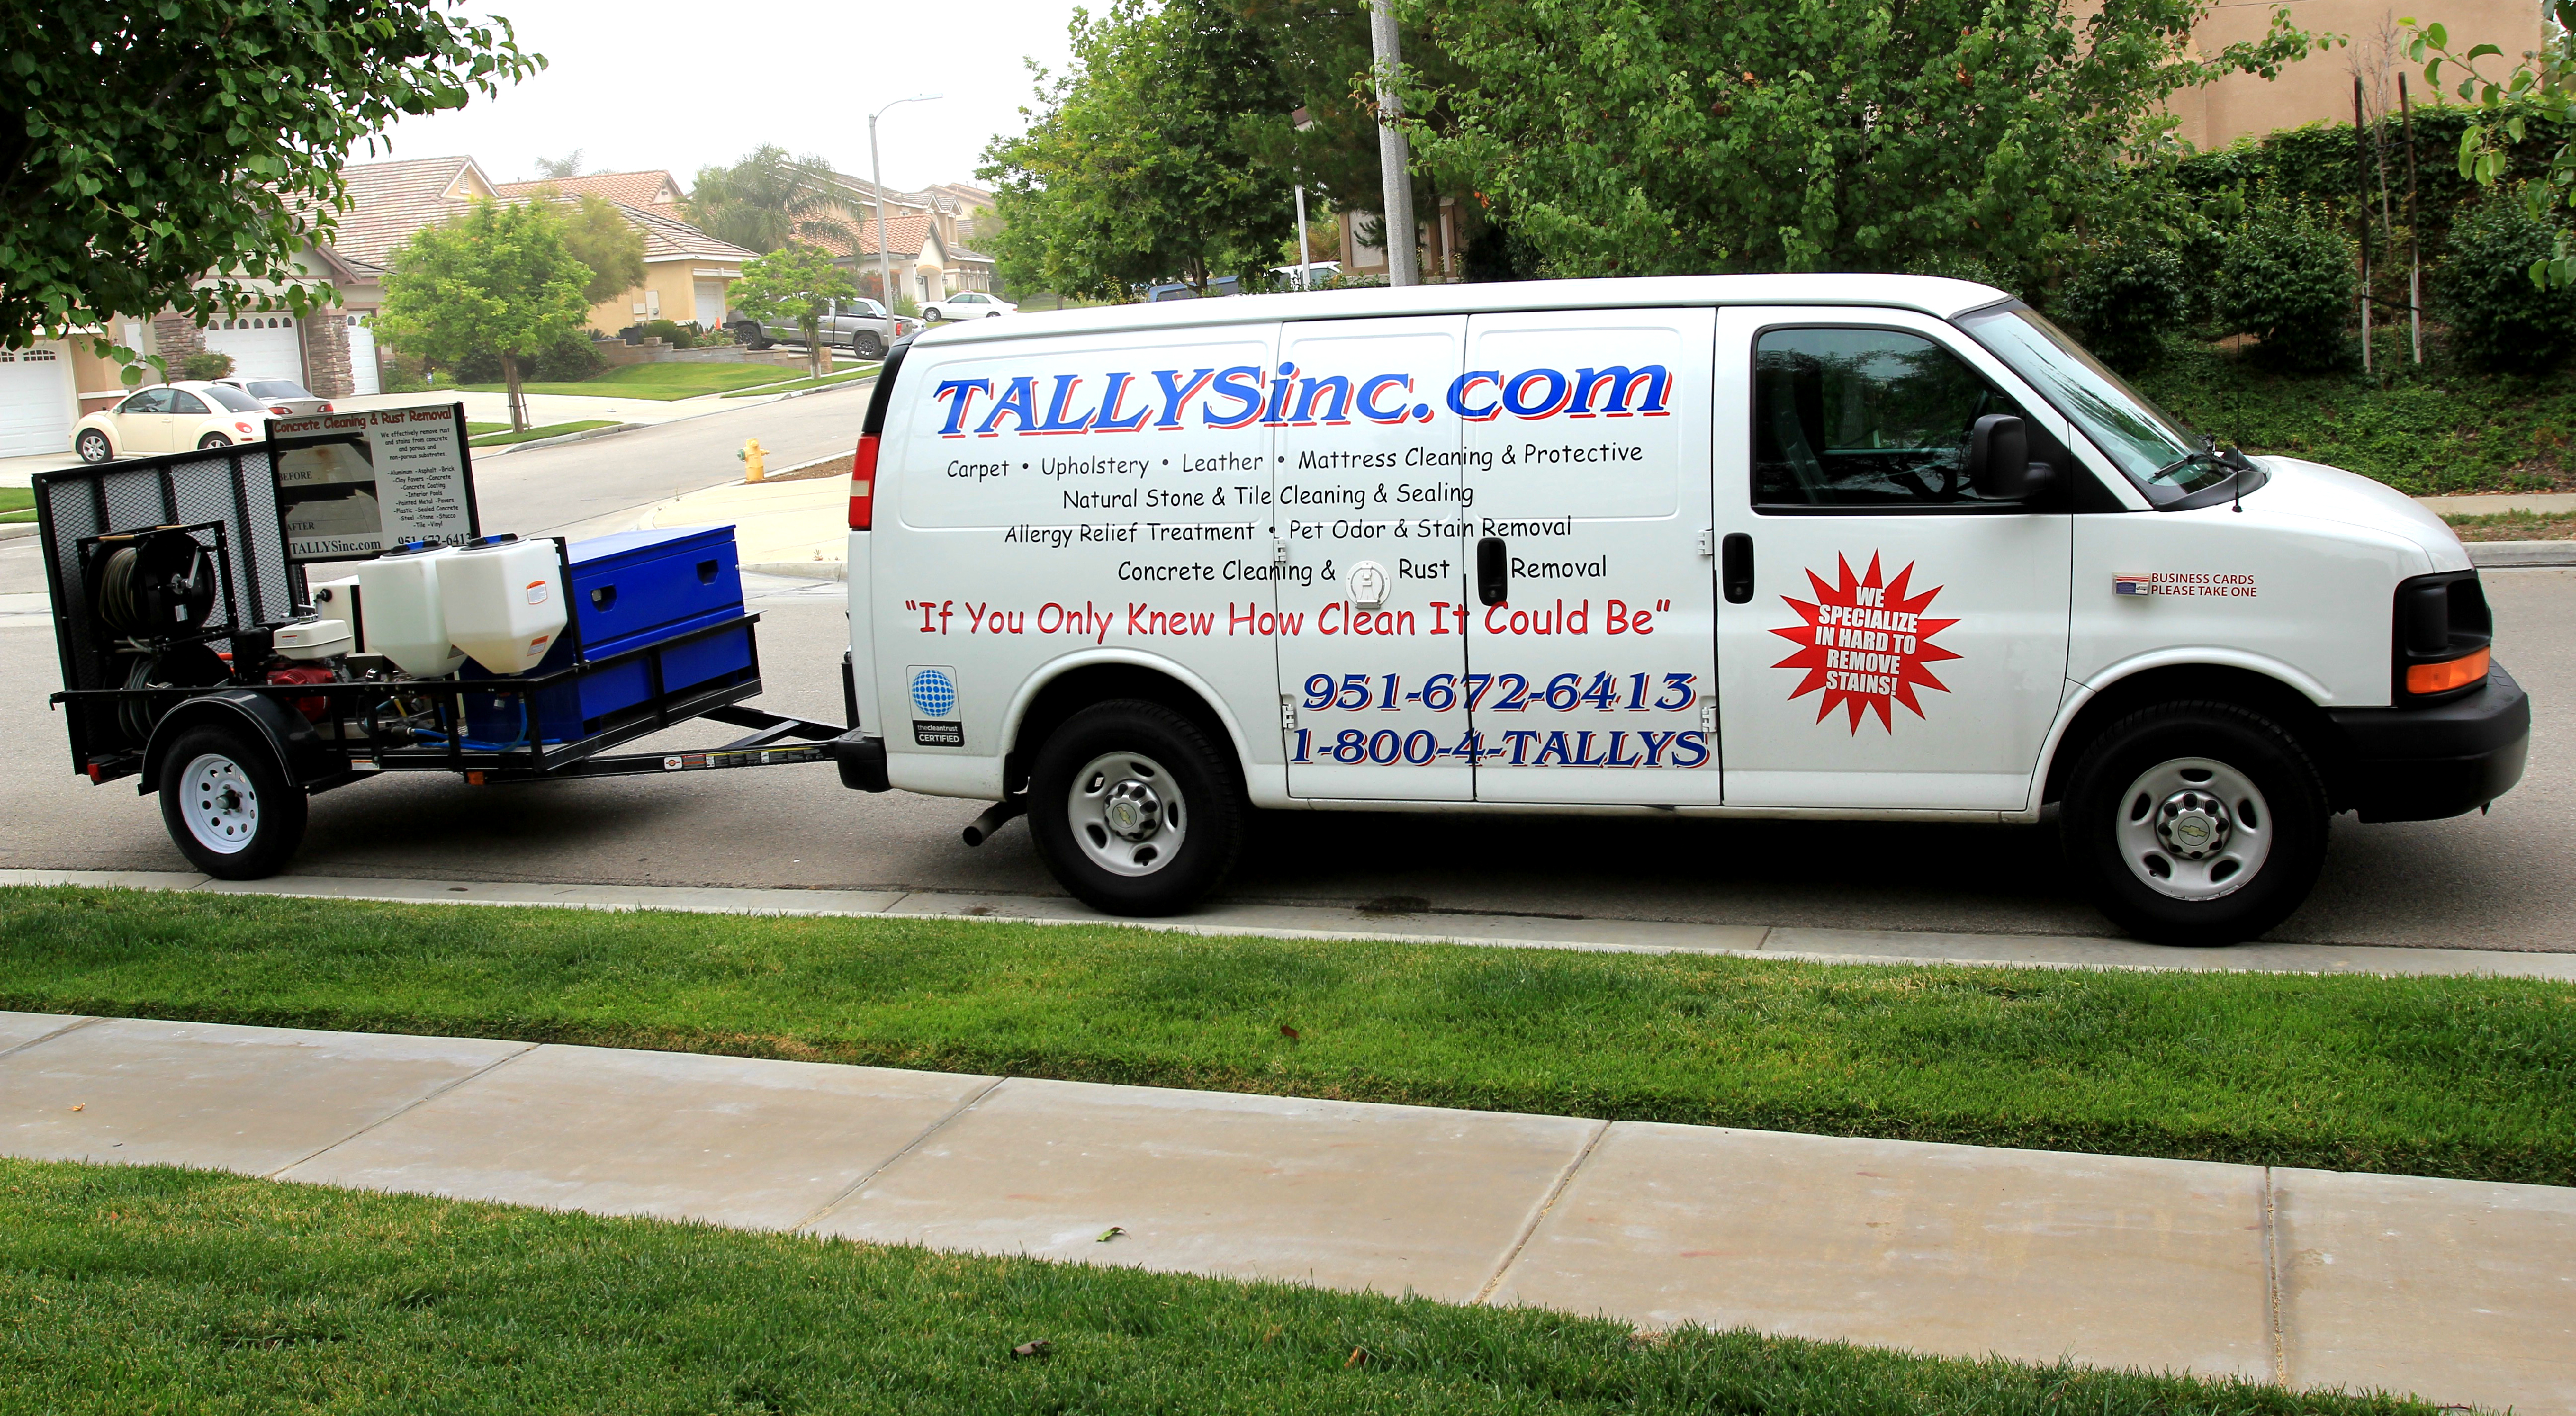 Tally's Carpet & Upholstery Cleaning, Inc | Carpet Cleaning in 33842 Vinca Ln - Murrieta CA - Reviews - Photos - Phone Number